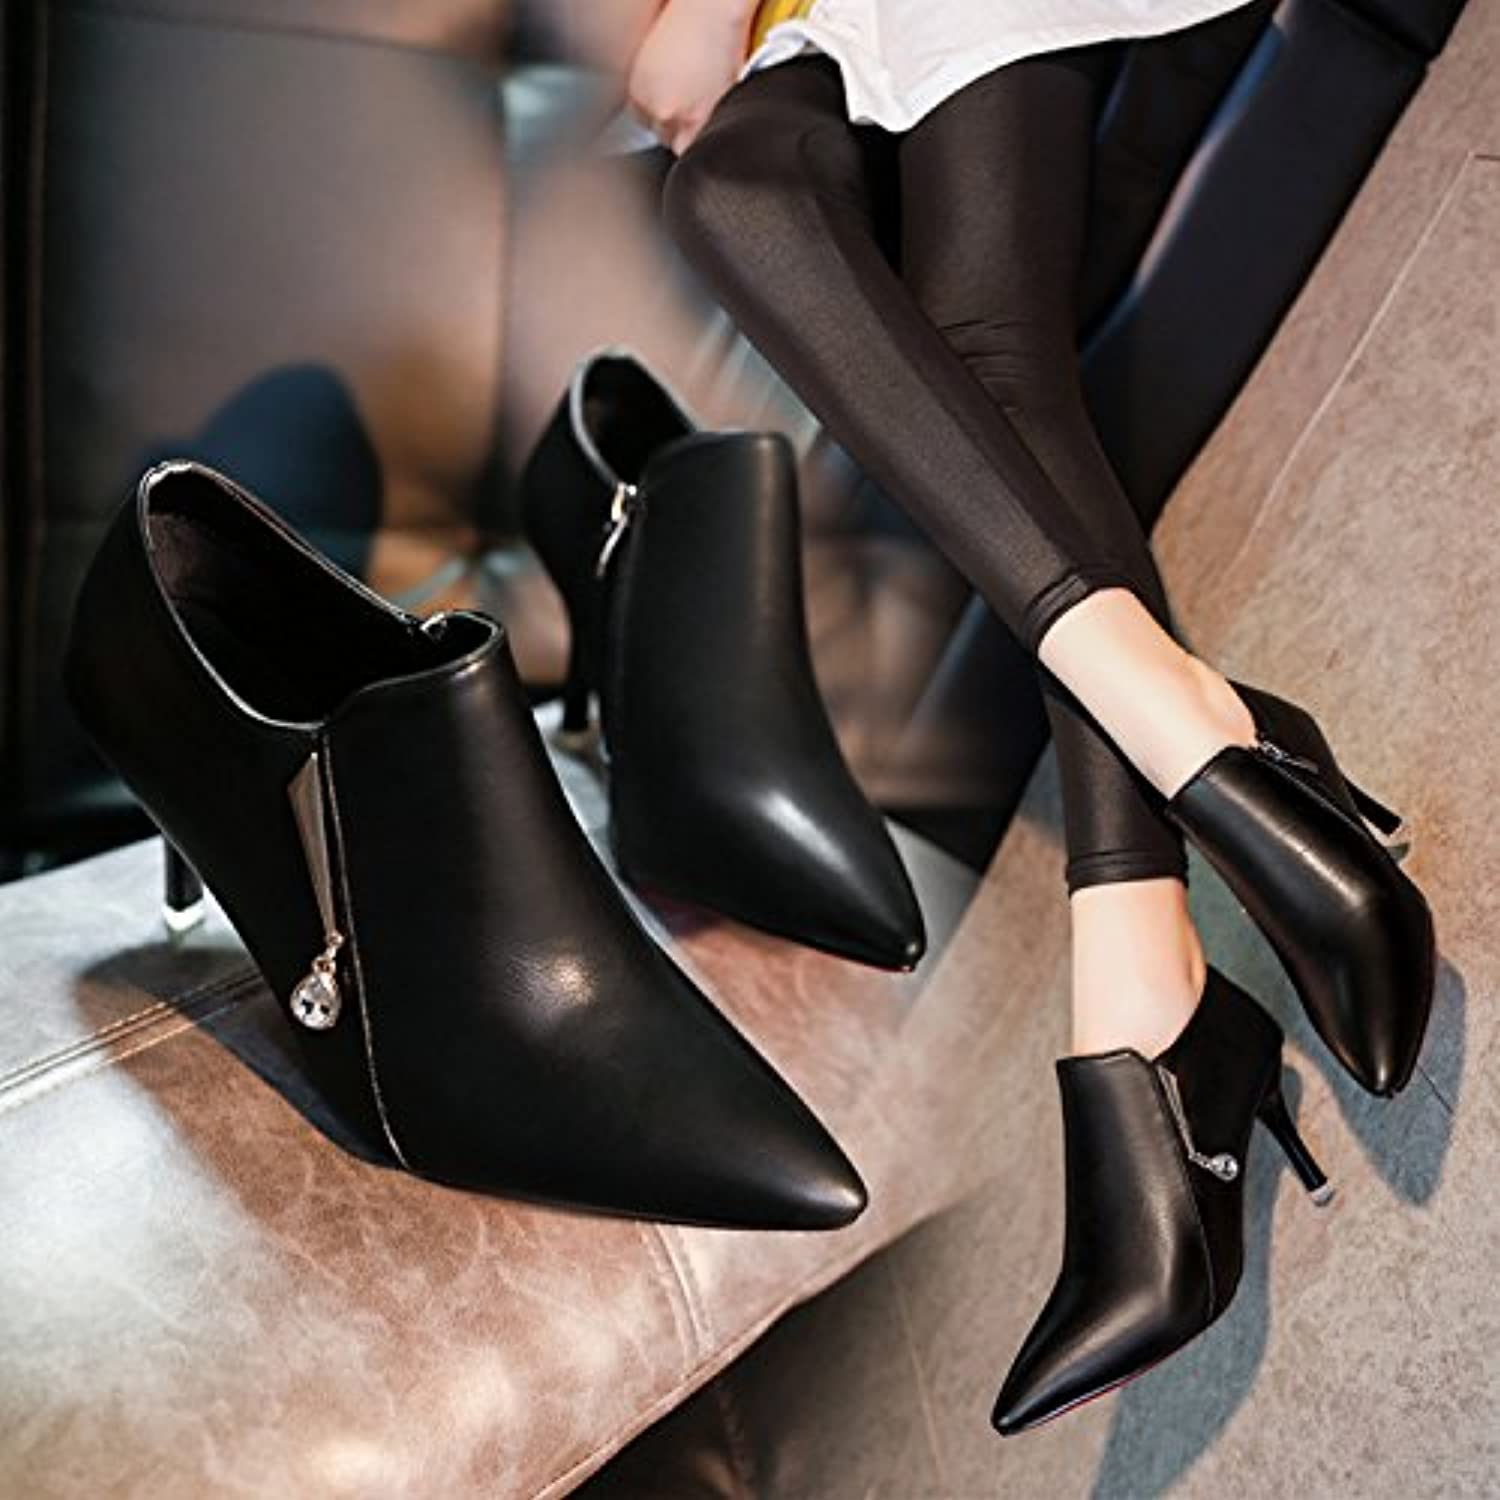 WYMBS Women's shoes Pointed High-Heeled Short Tube Short Boots Leather shoes